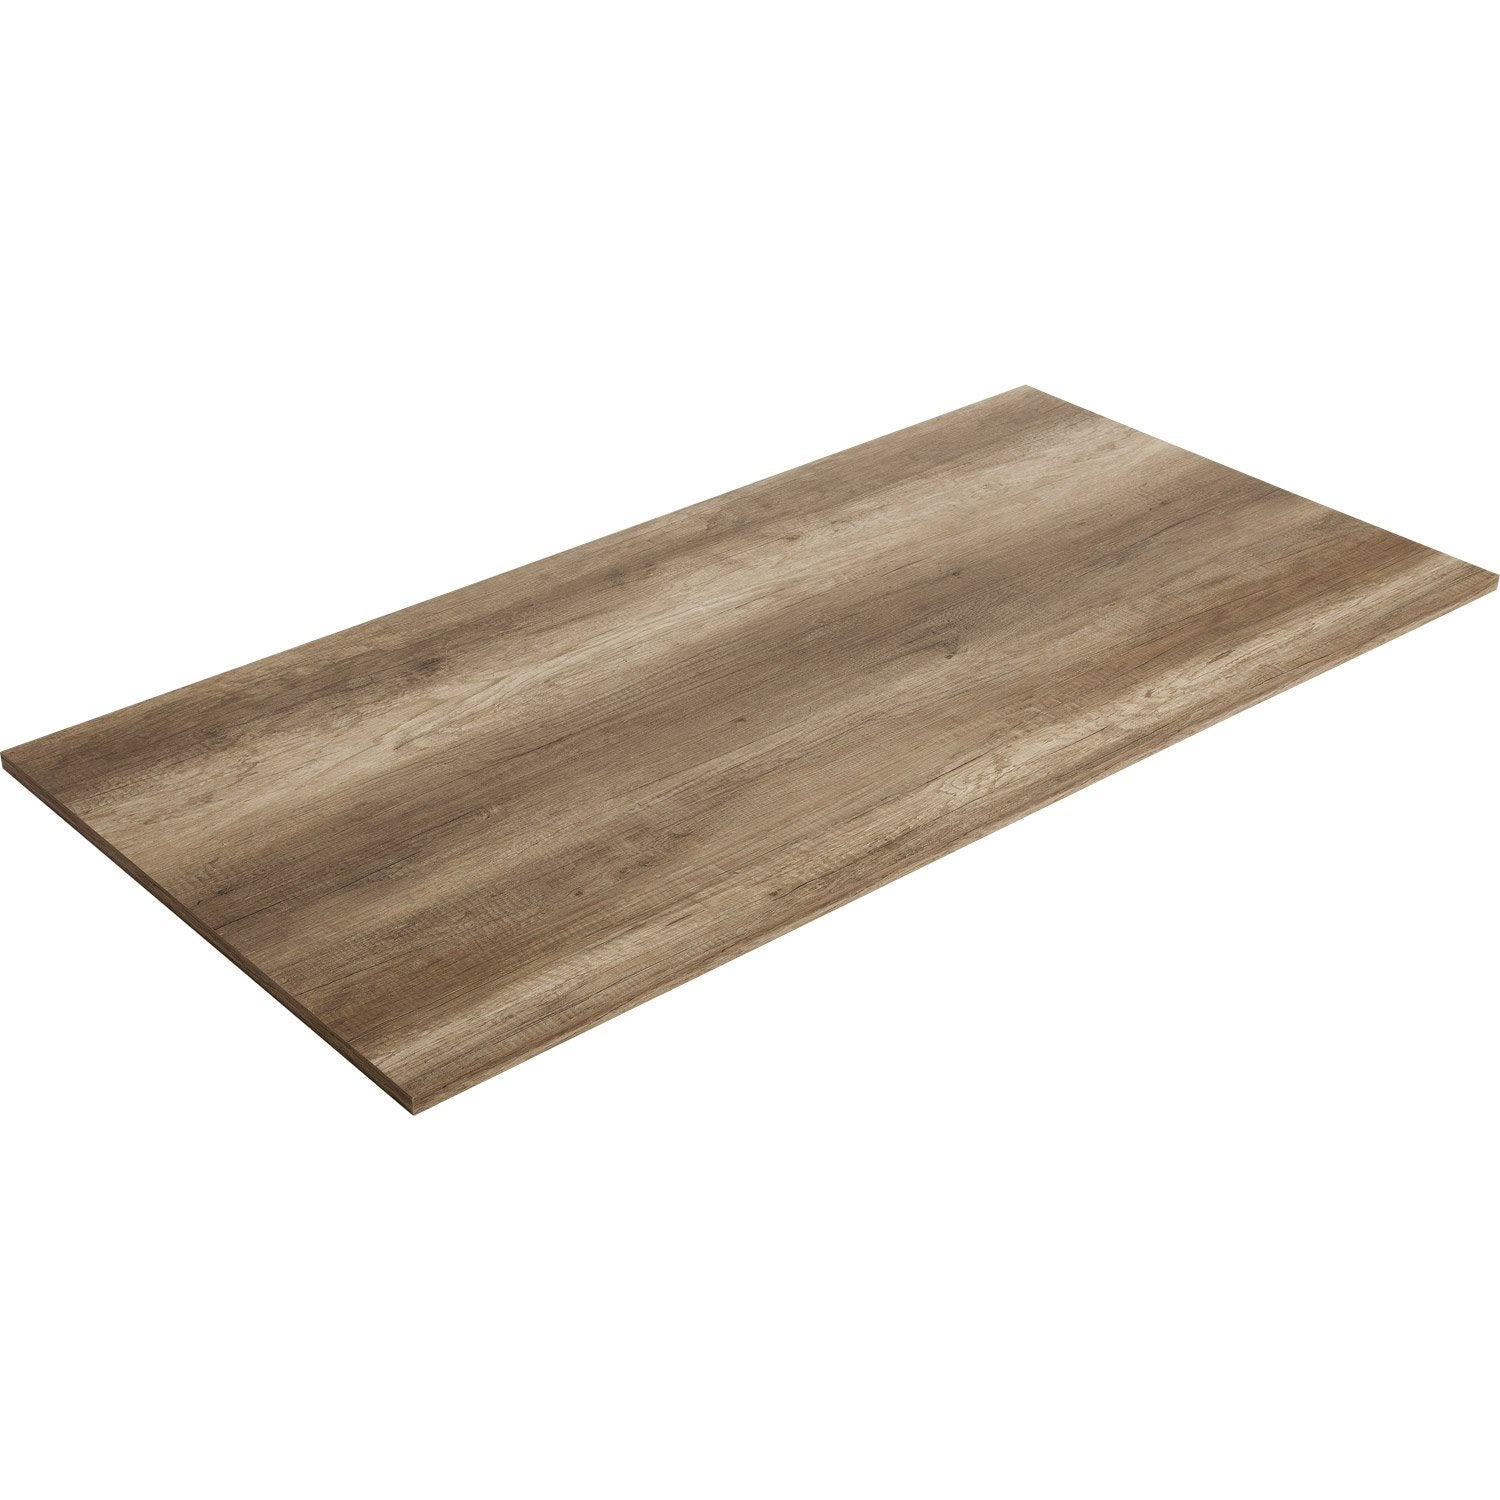 Plateau de table agglom r ch ne authentique spaceo - Plateau pour table a manger ...